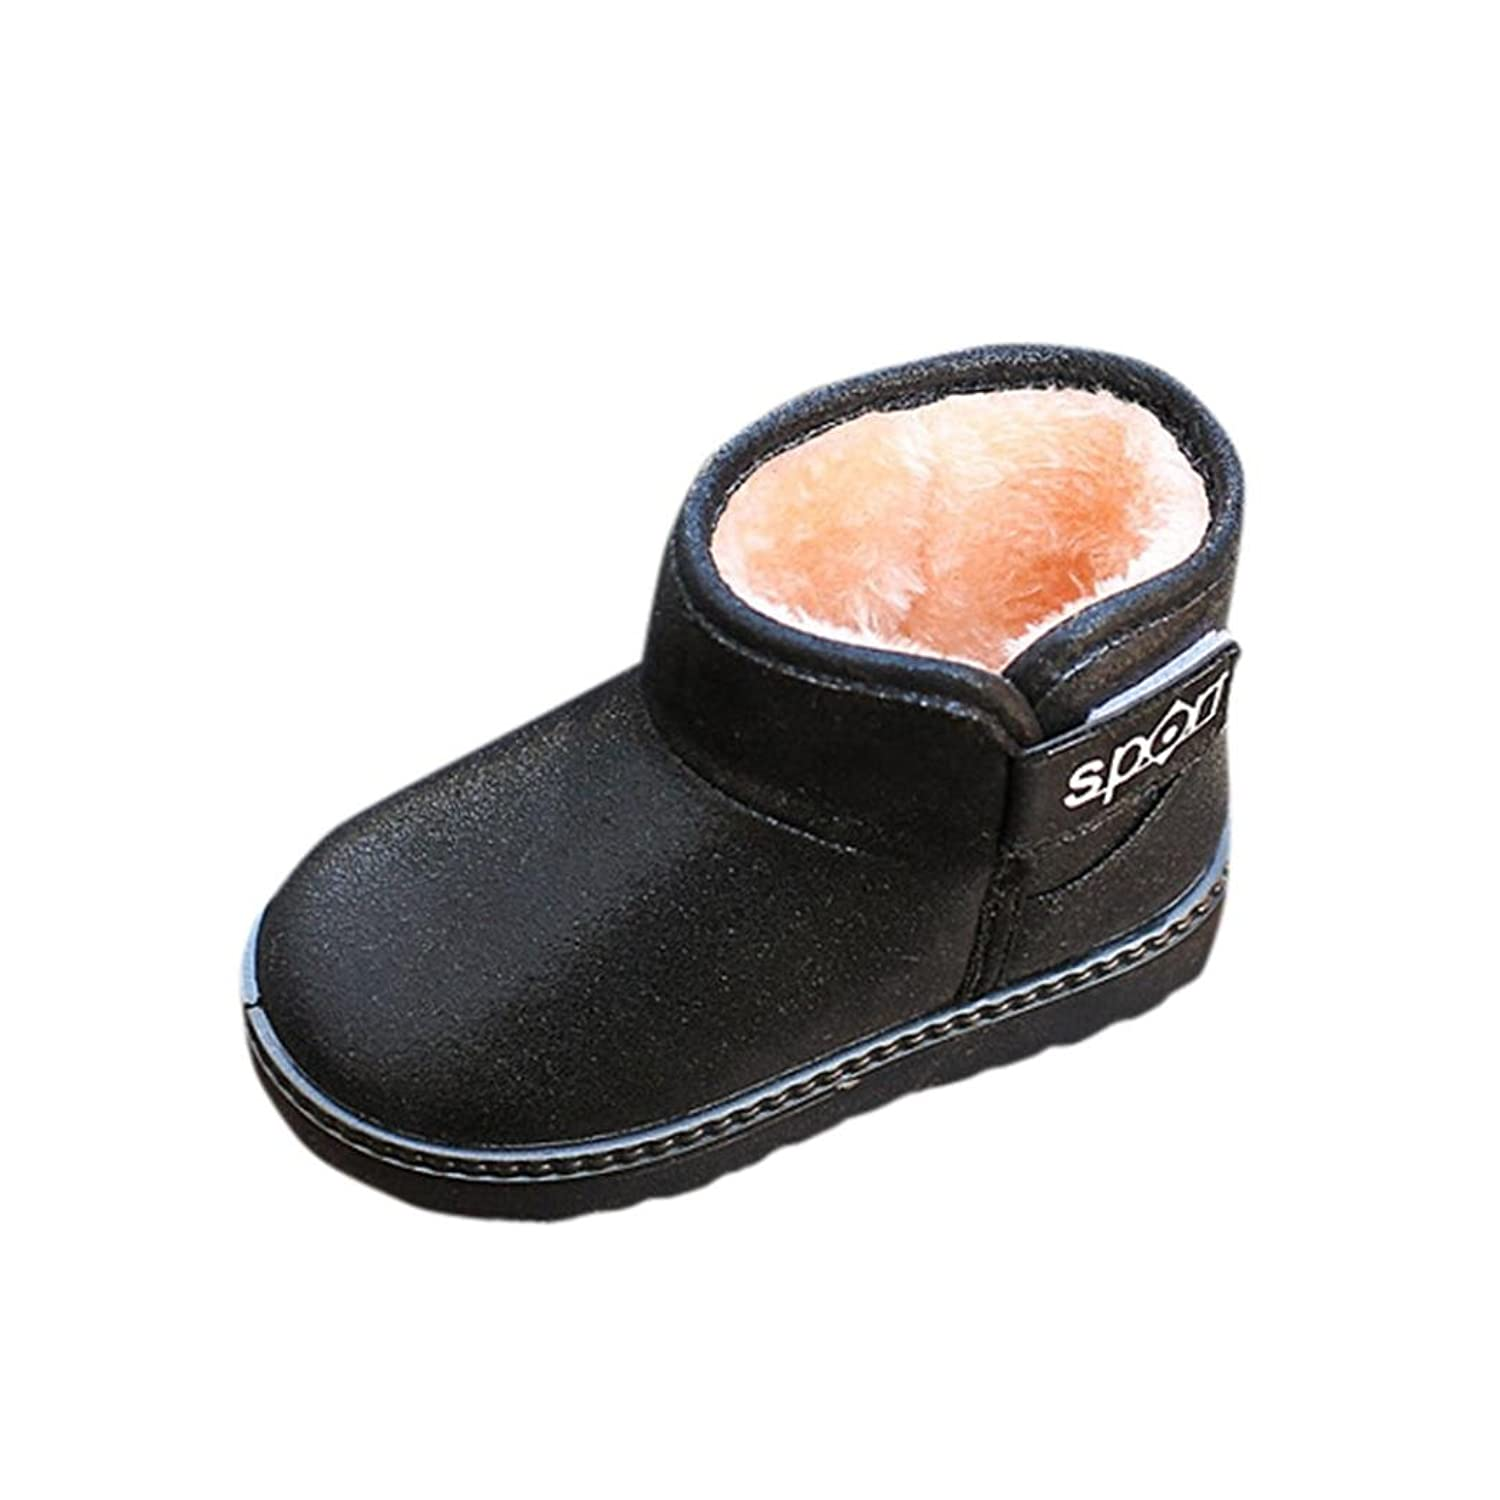 Amiley Kids Comfortable Casual Shoes Winter Girls Boys Lovely Hiking Snow Boots (Toddler/Little Kid)